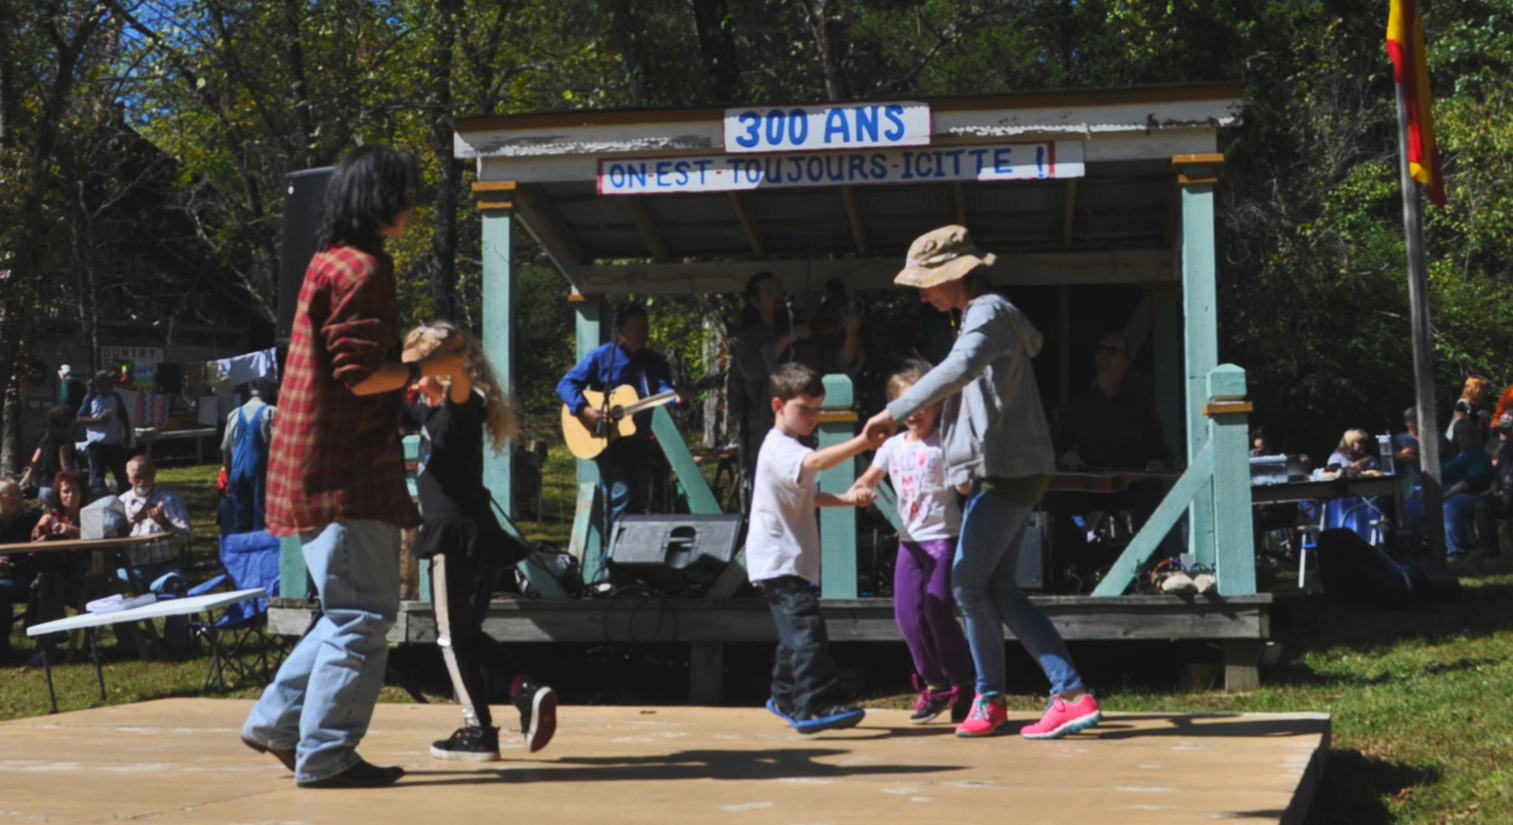 Old Mines: The Fall Festival included many celebratory activities including music and dancing and was a way for the people to embrace their French heritage. Tim Wilhelm / News Editor